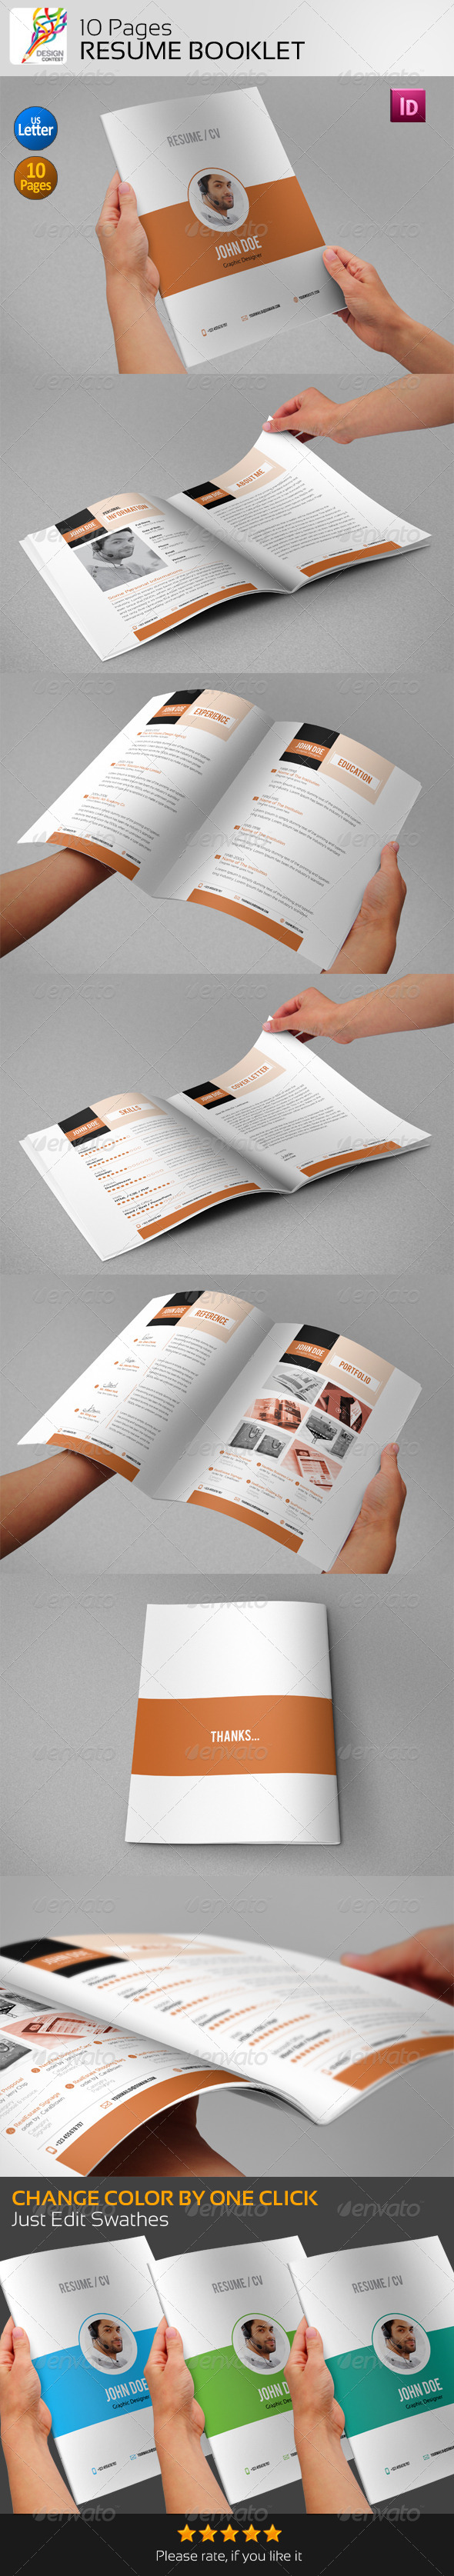 GraphicRiver Resume Booklet 10 Pages 5131822